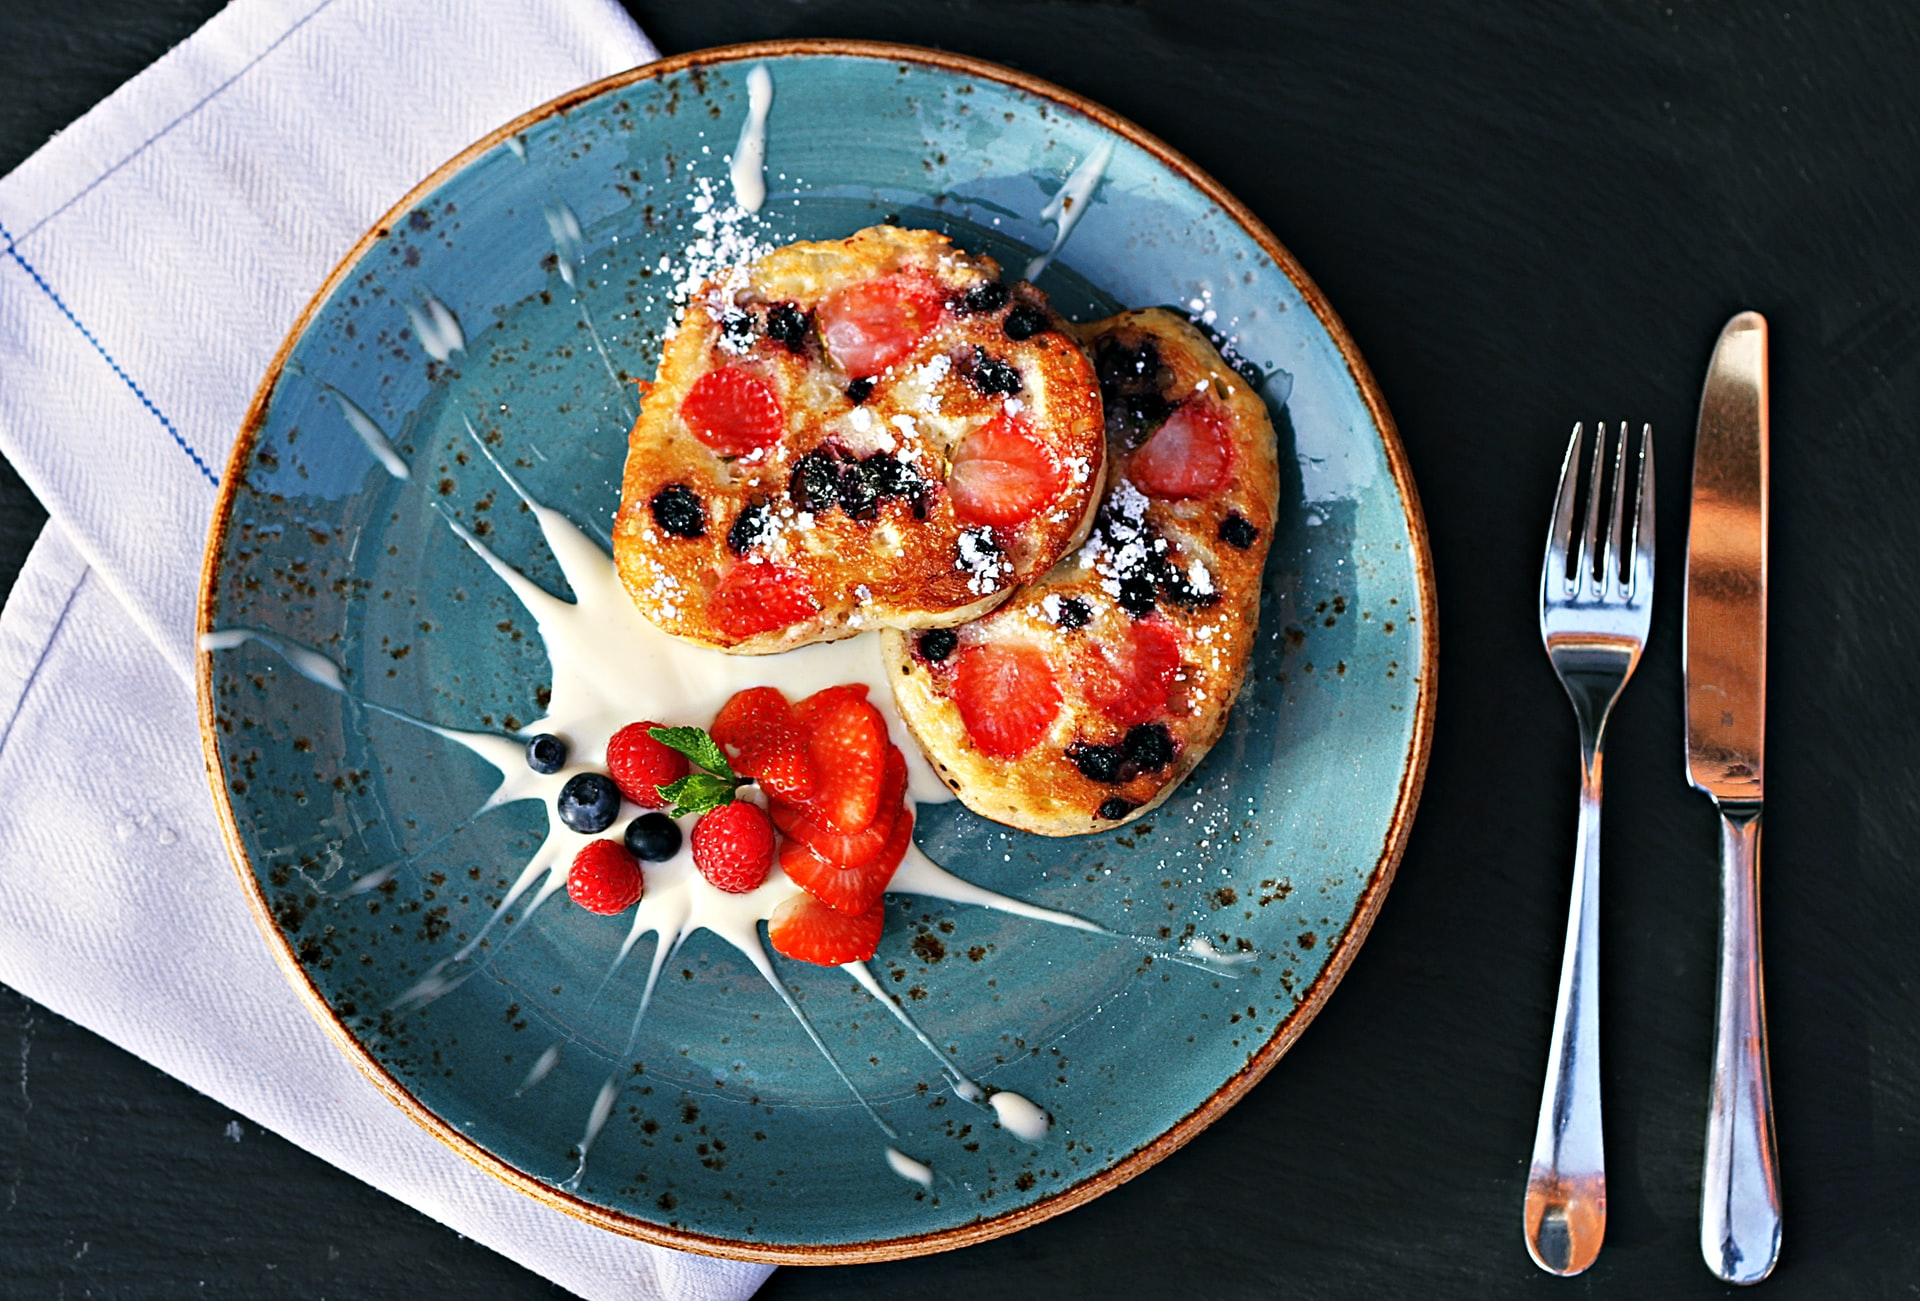 Where To Find The Best Brunch In Soho